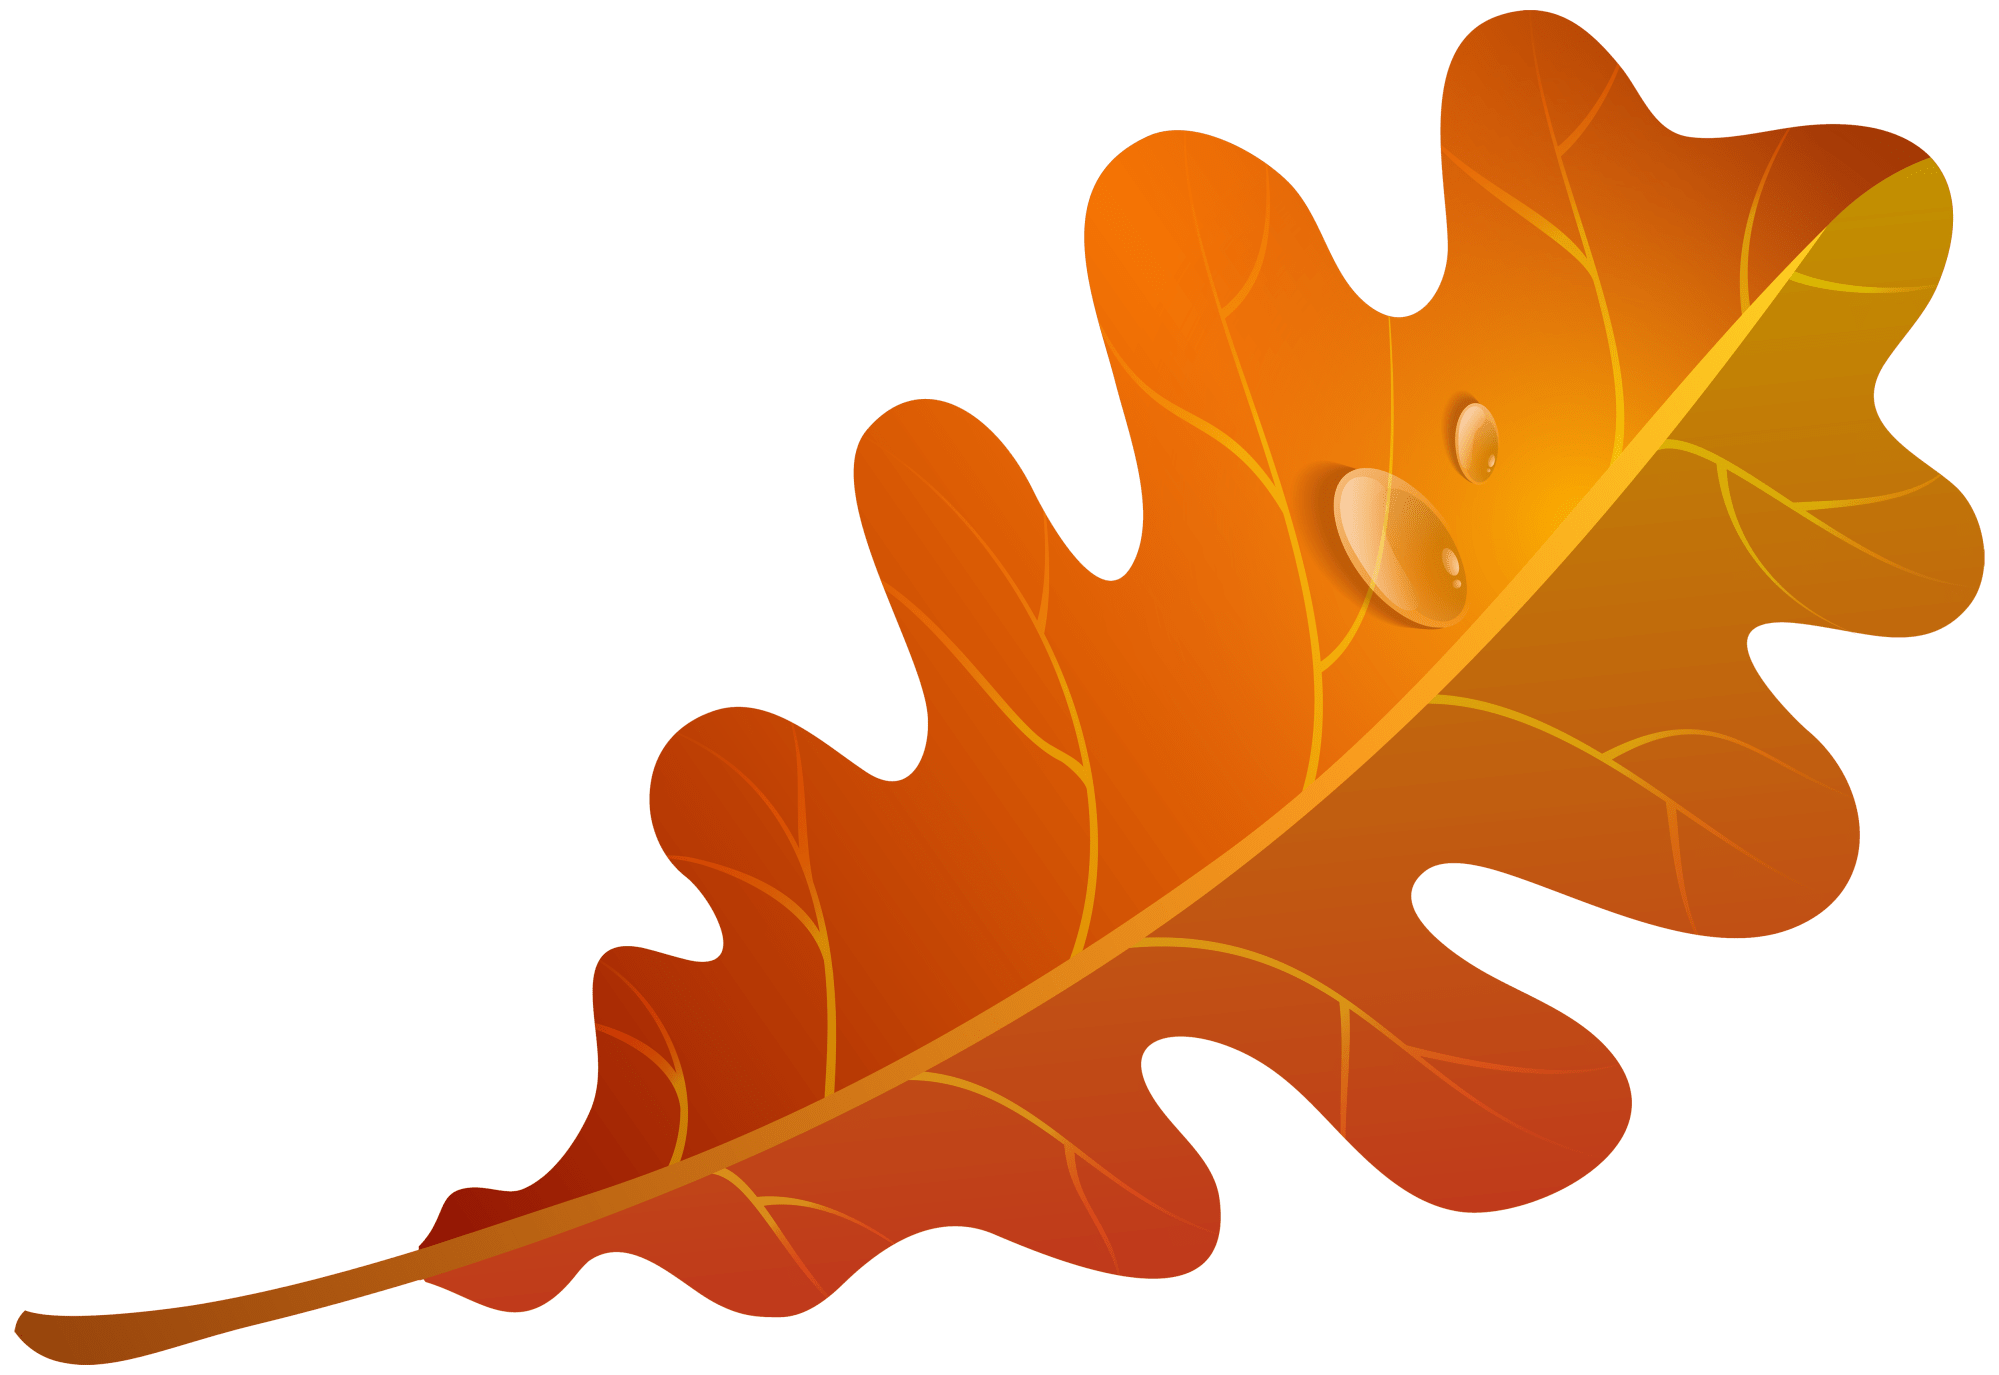 hight resolution of 5000x3439 edit and free download fall orange leaf png clipart image